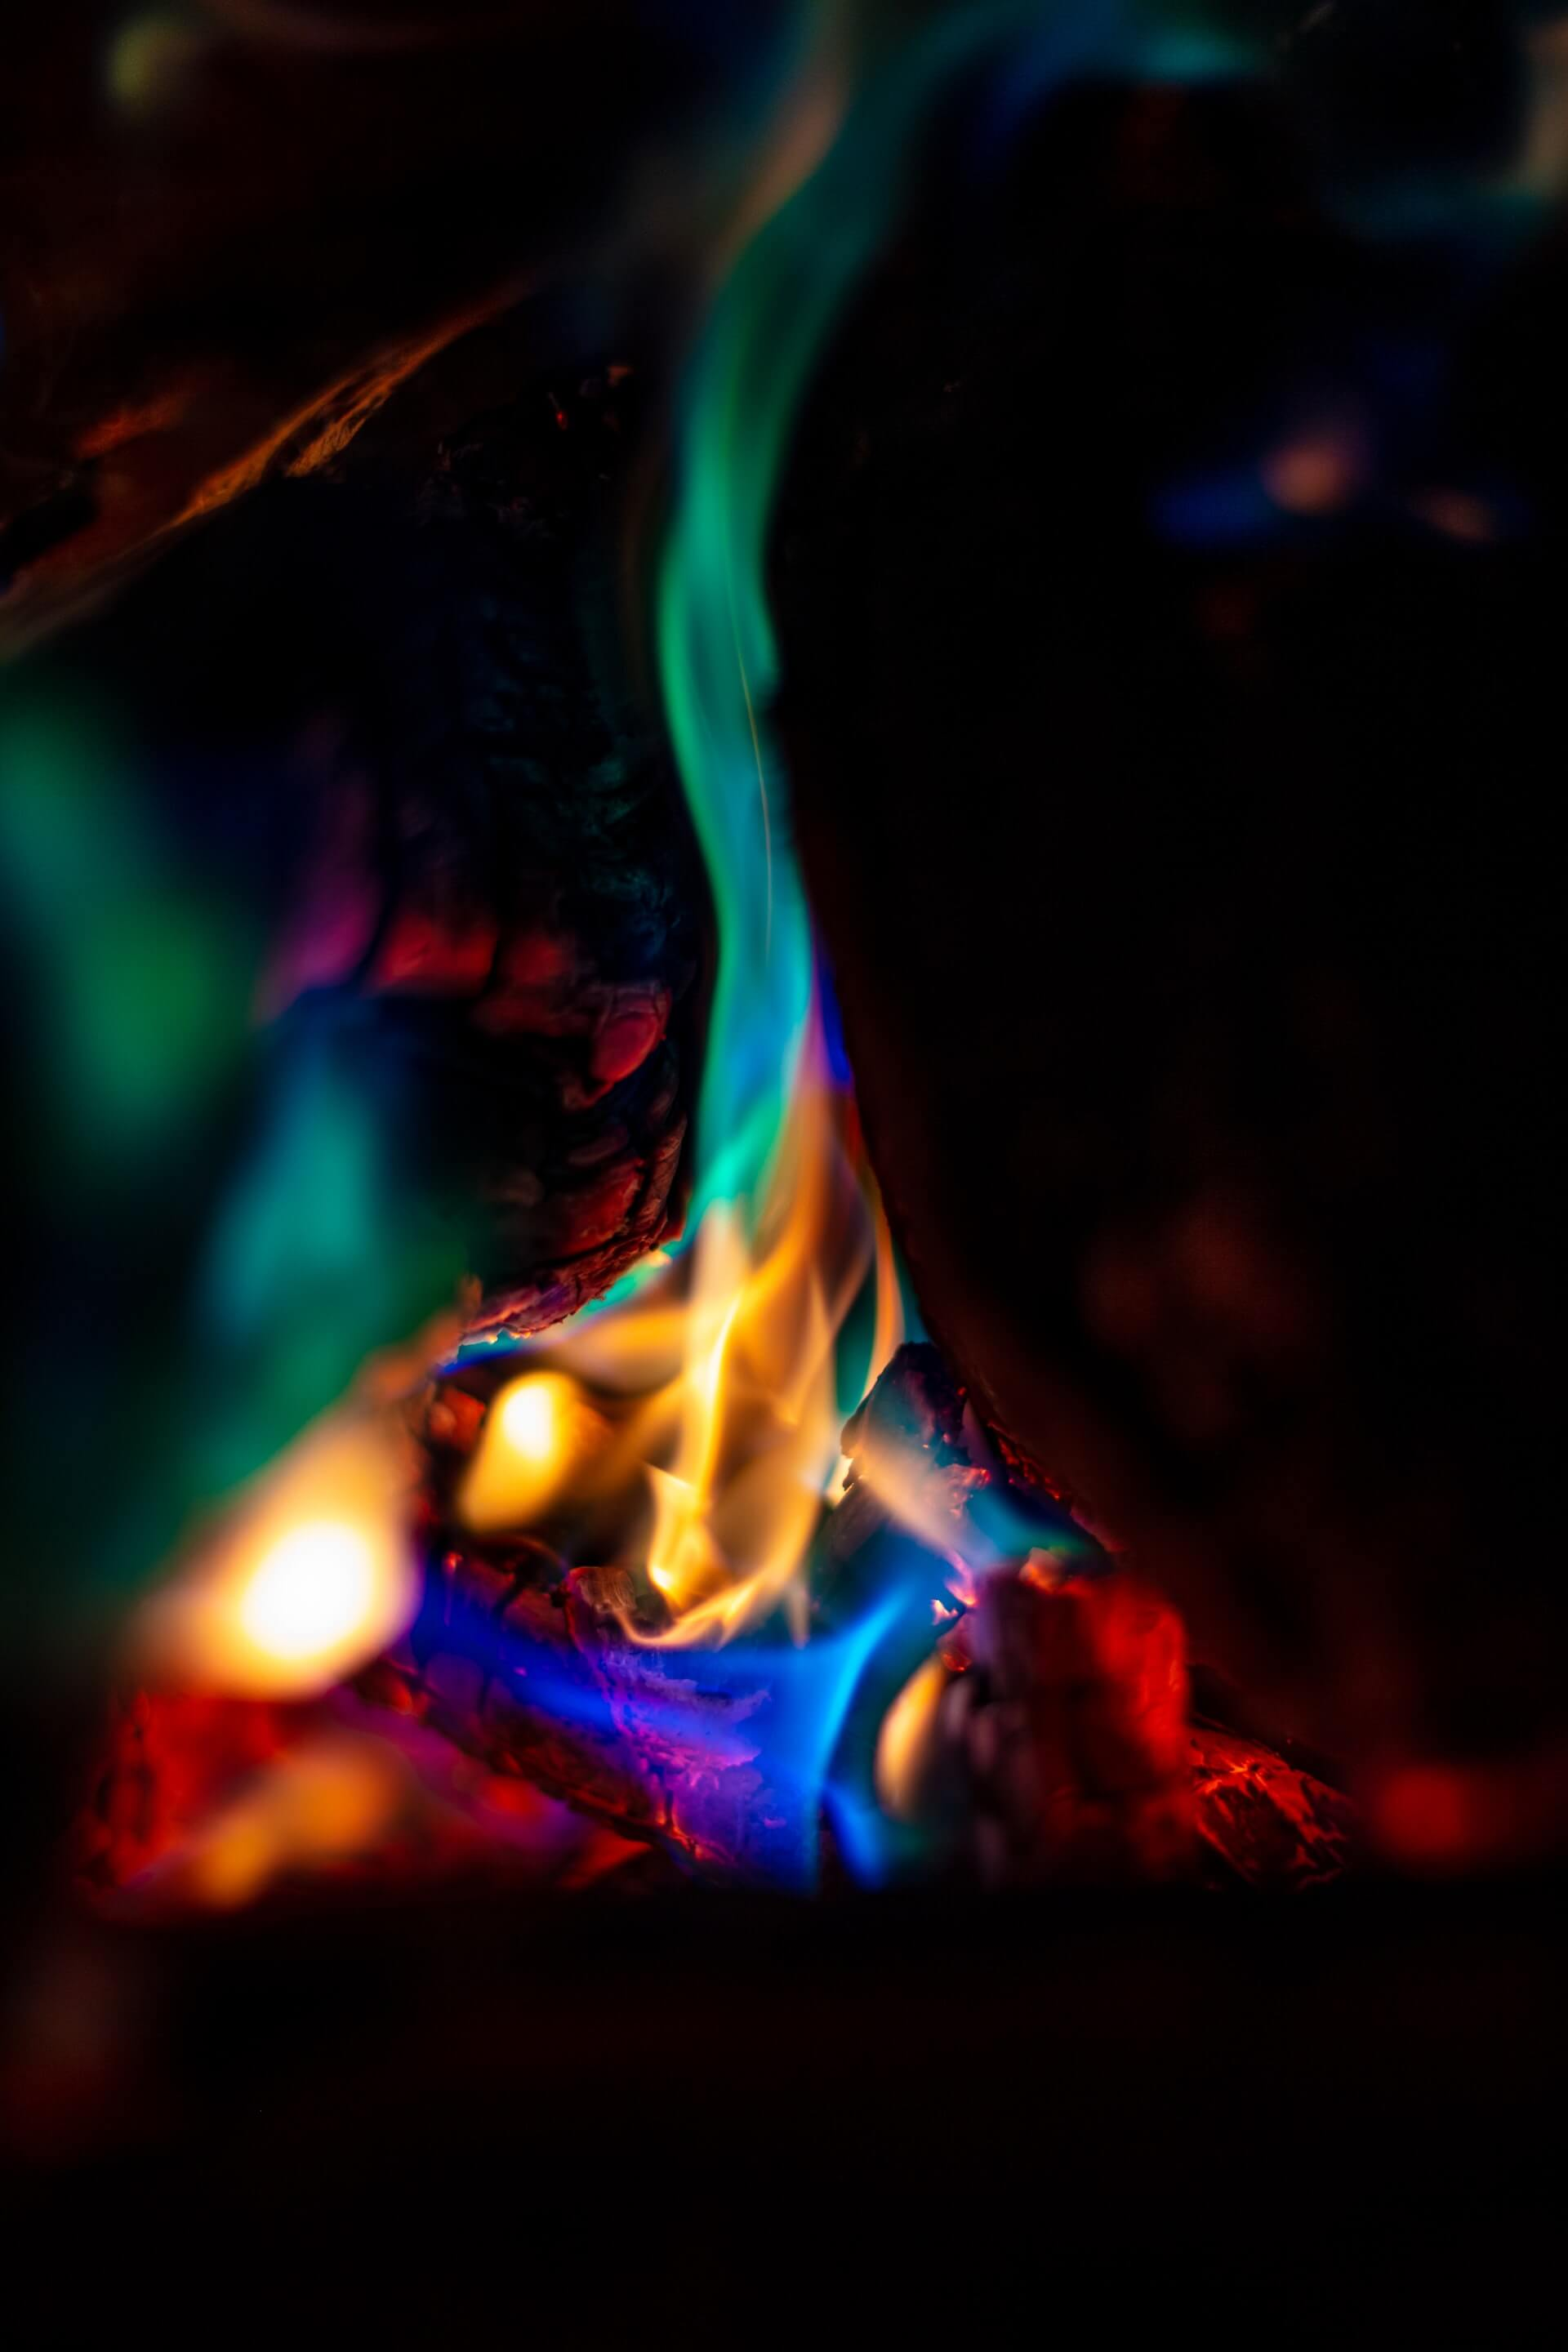 bonfire at night fire different colors green yellow blue